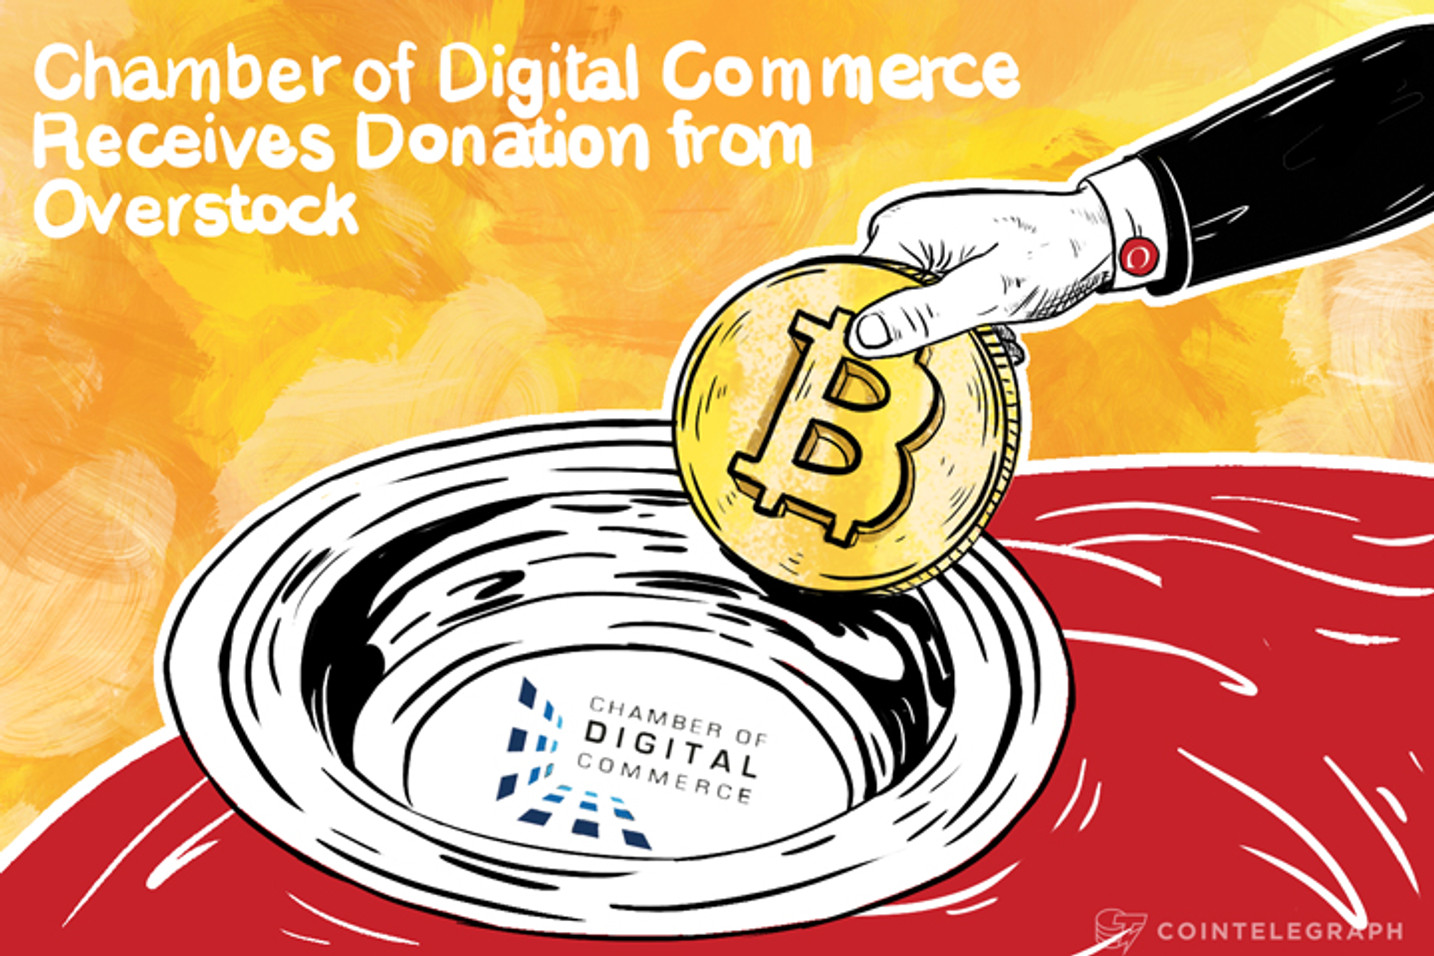 Chamber of Digital Commerce Receives Donation From Overstock